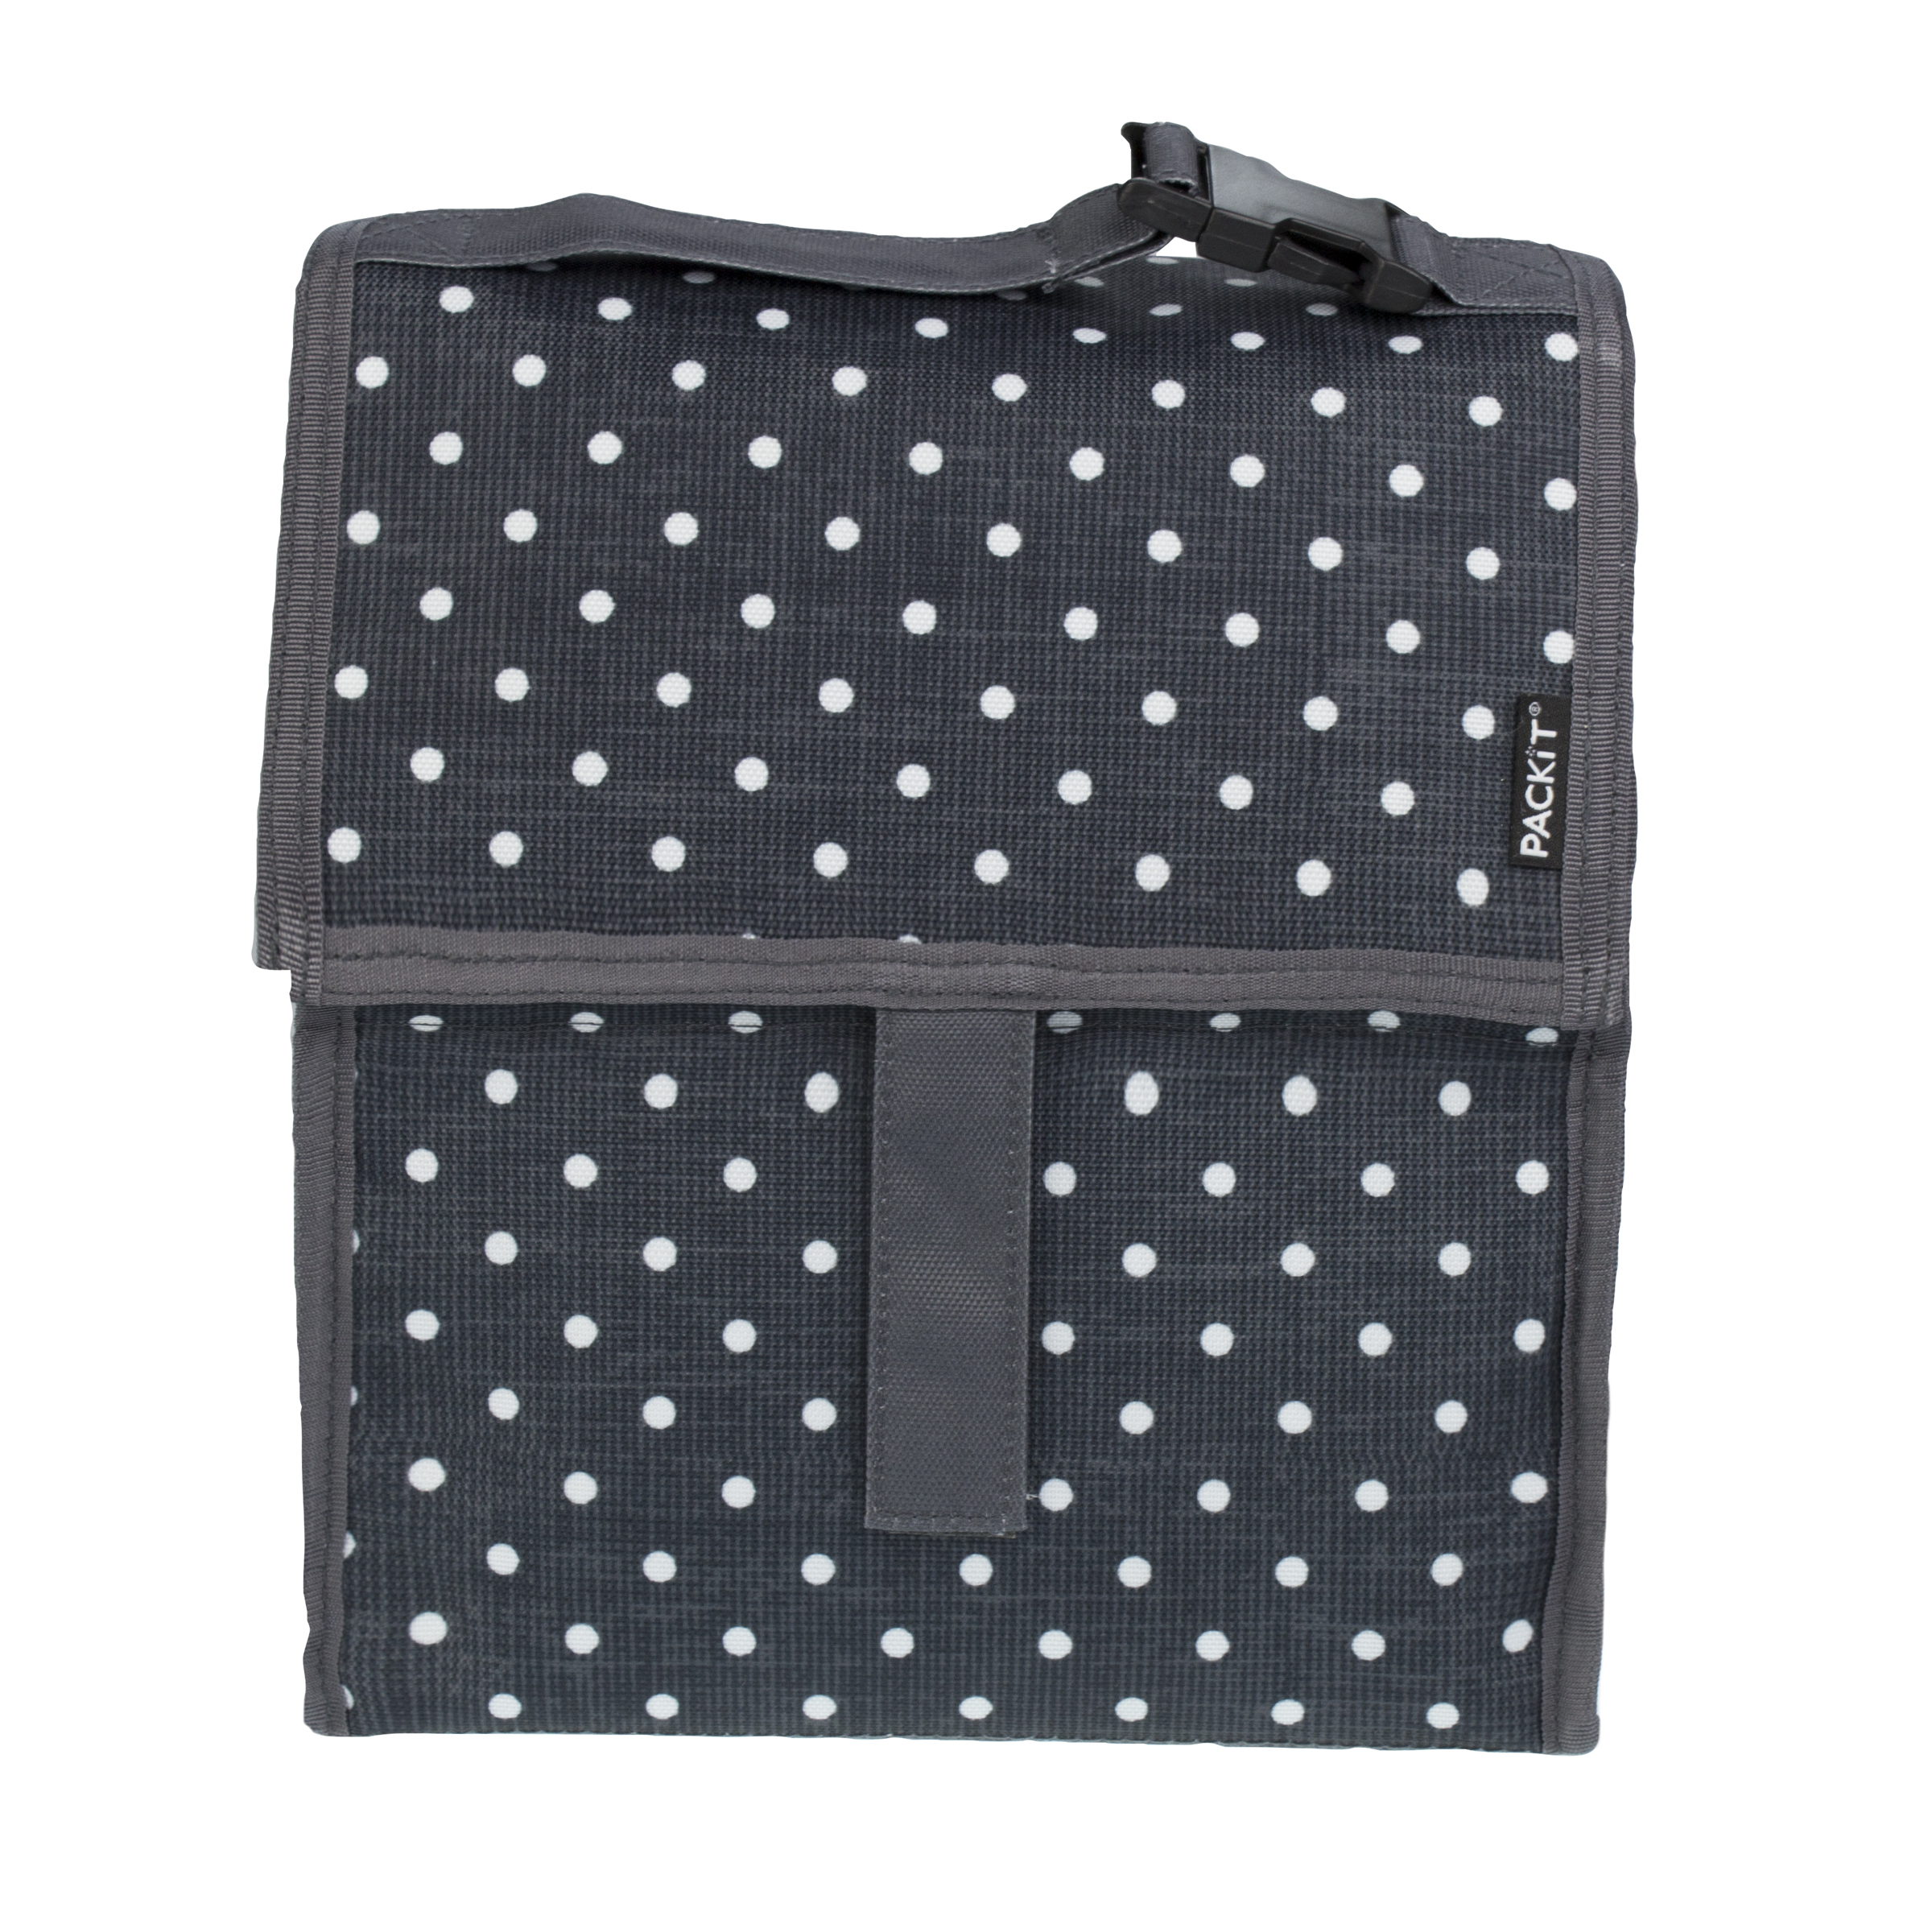 LUNCH BAG - POLKA DOTS - PACKIT